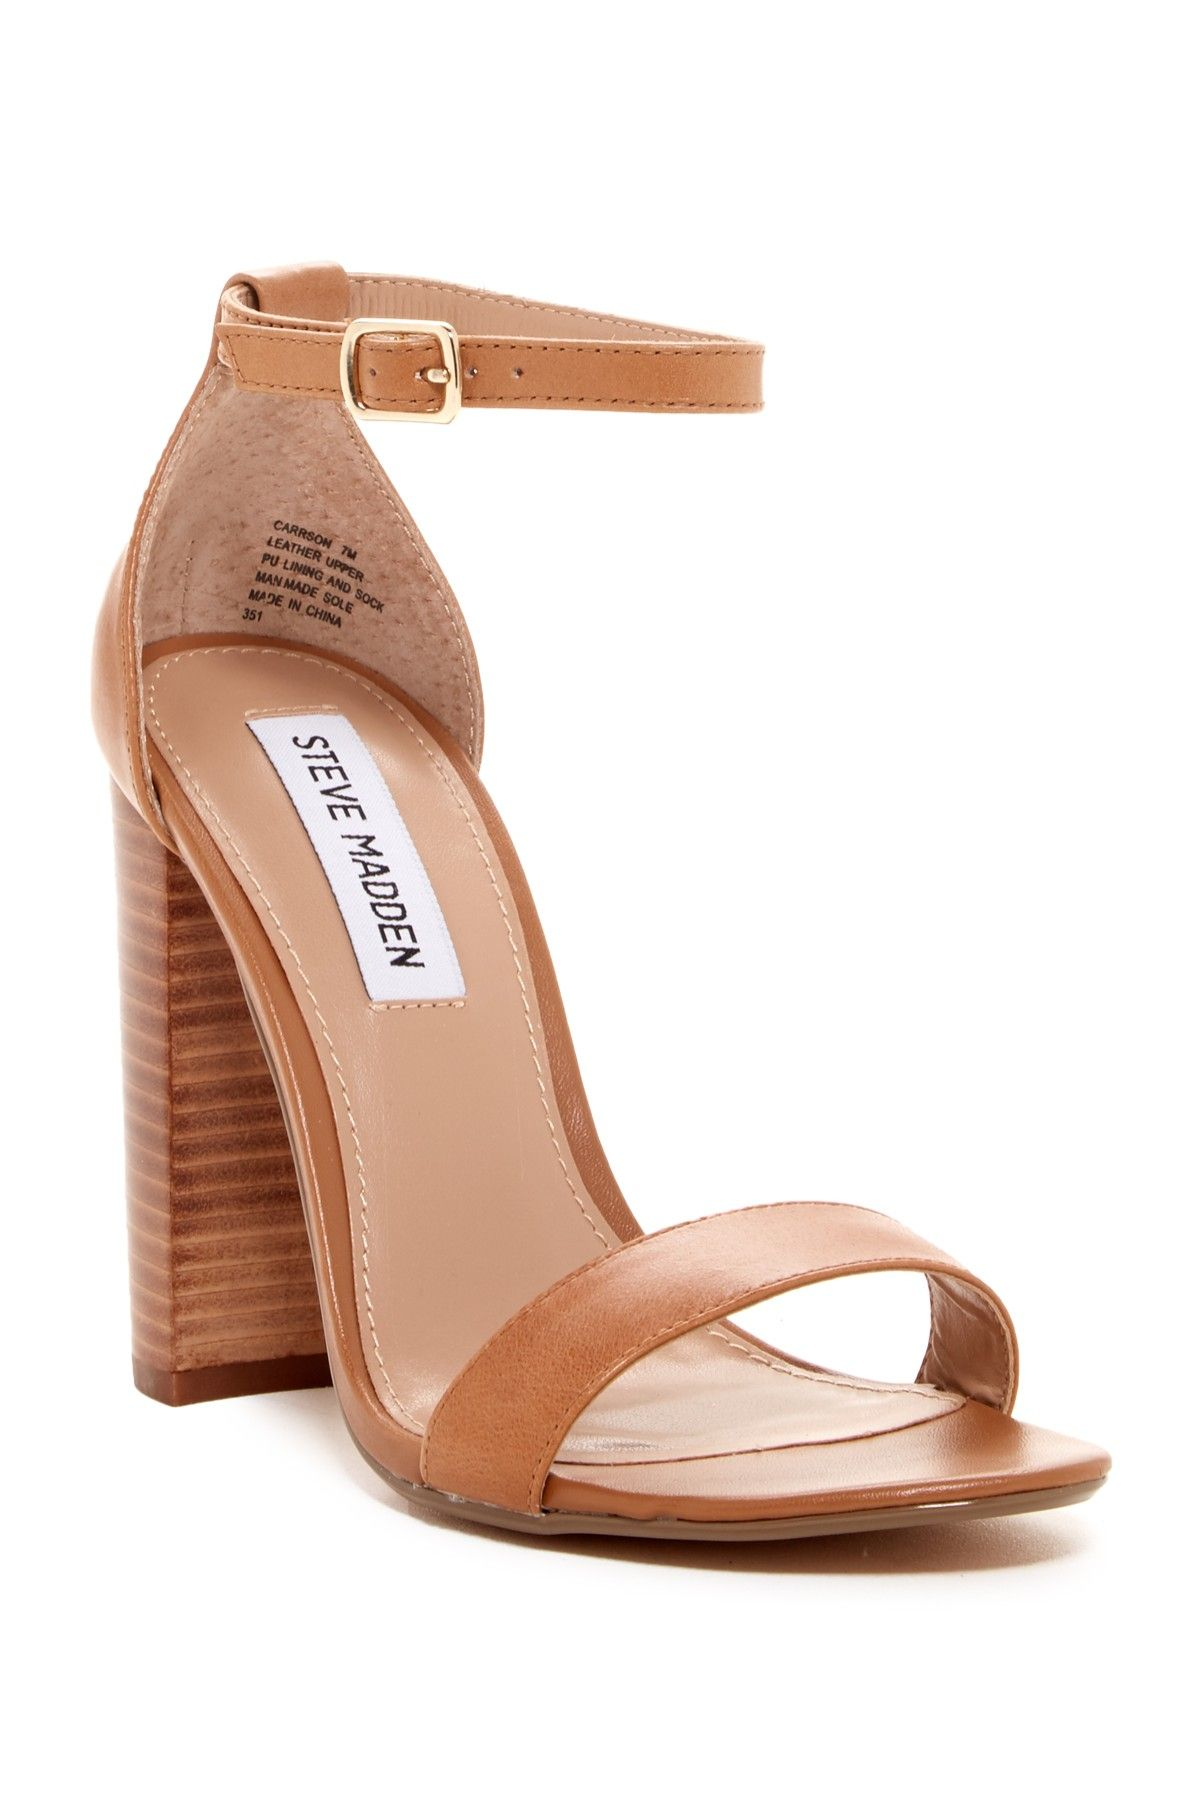 089453b44e7 An elegant pair of Steve Madden sandals that will go with any work outfit